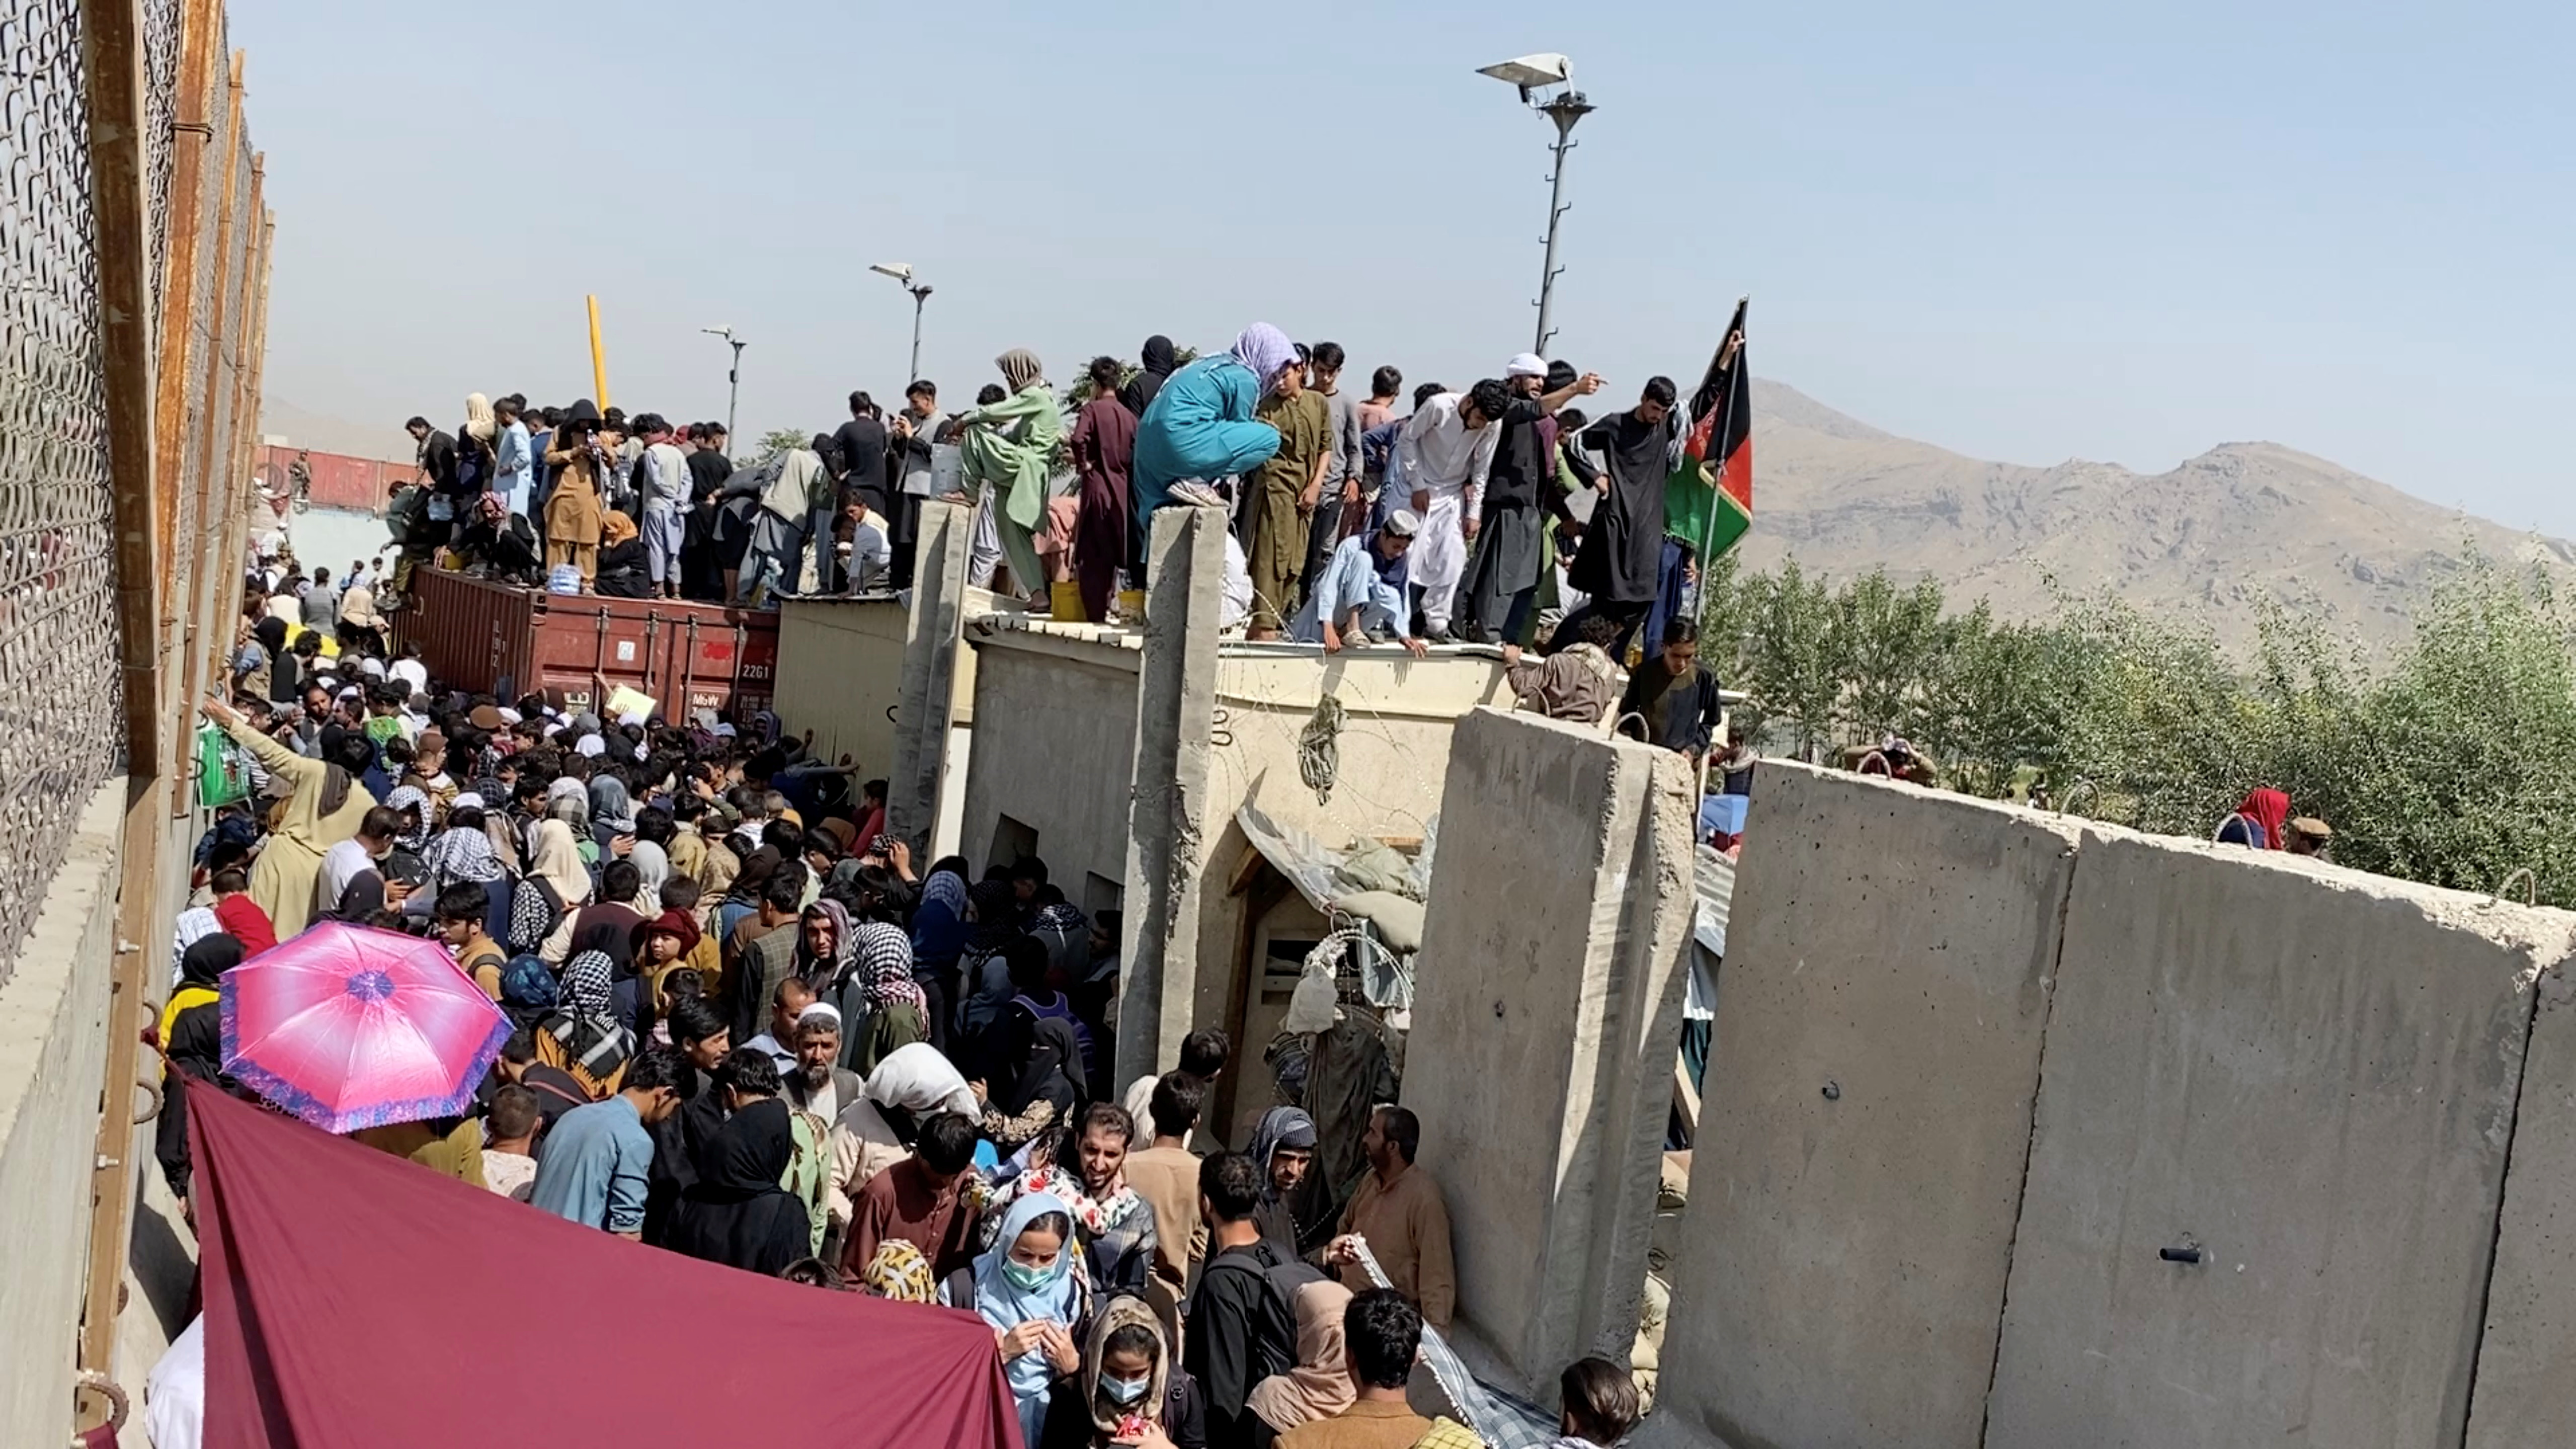 A still image taken from video shows crowds of people near the airport in Kabul, August 23, 2021. ASVAKA NEWS via REUTERS